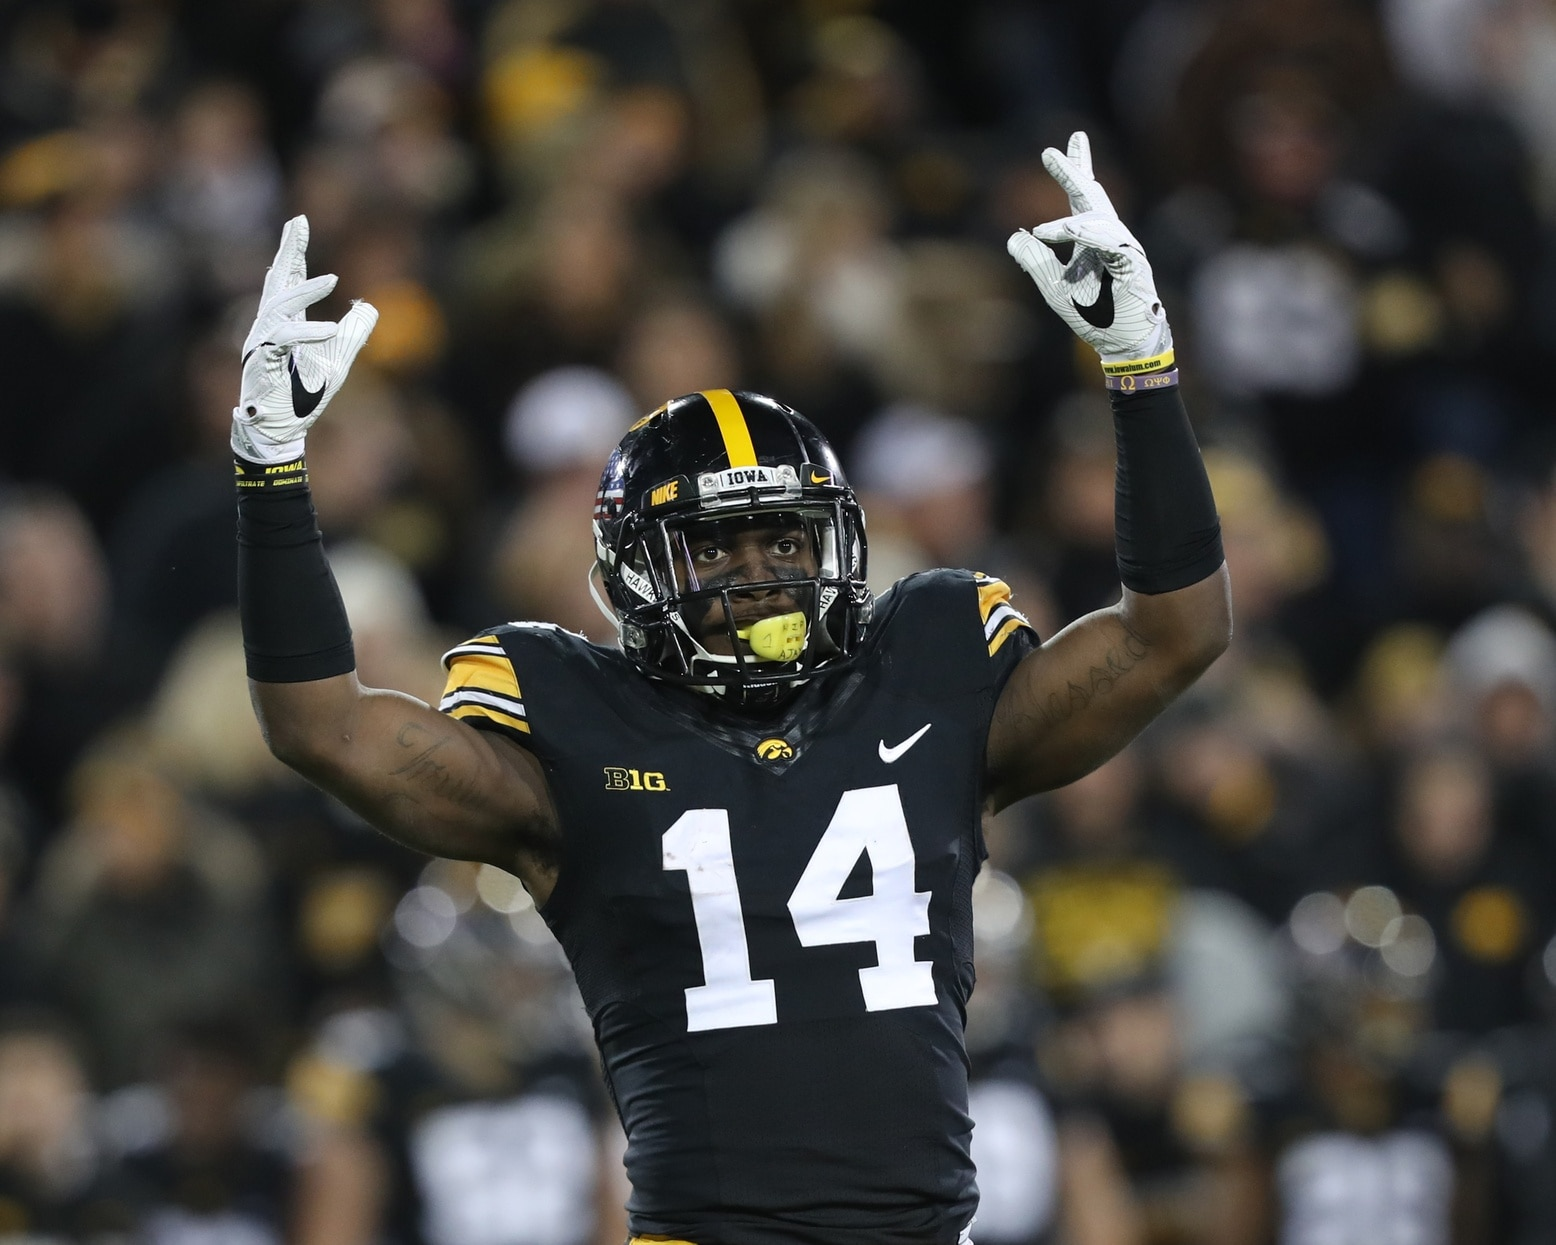 Desmond King is one of the NFL rookies set that is a diamond in the rough